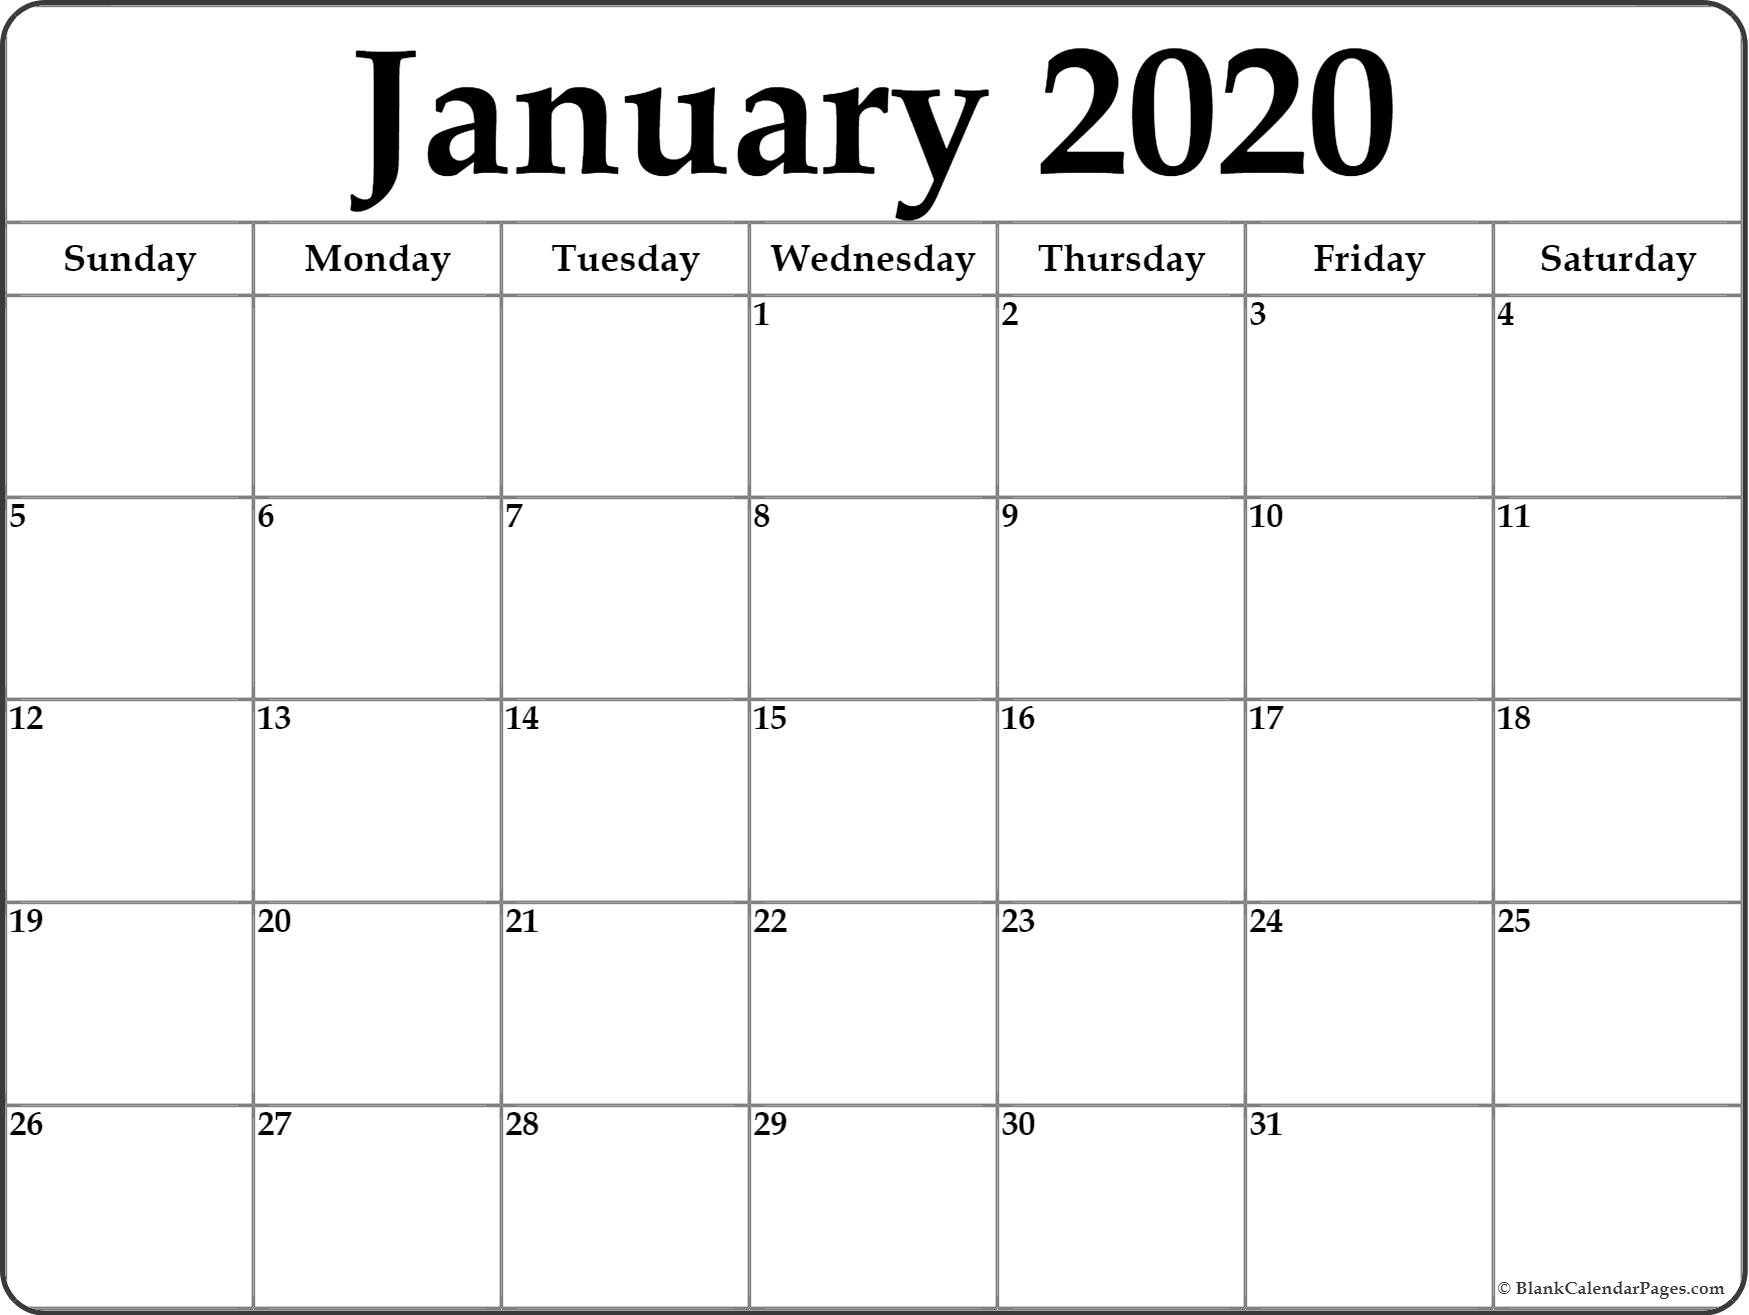 January 2020 Calendar | Free Printable Monthly Calendars-2020 Month At A Glance Calendar Template